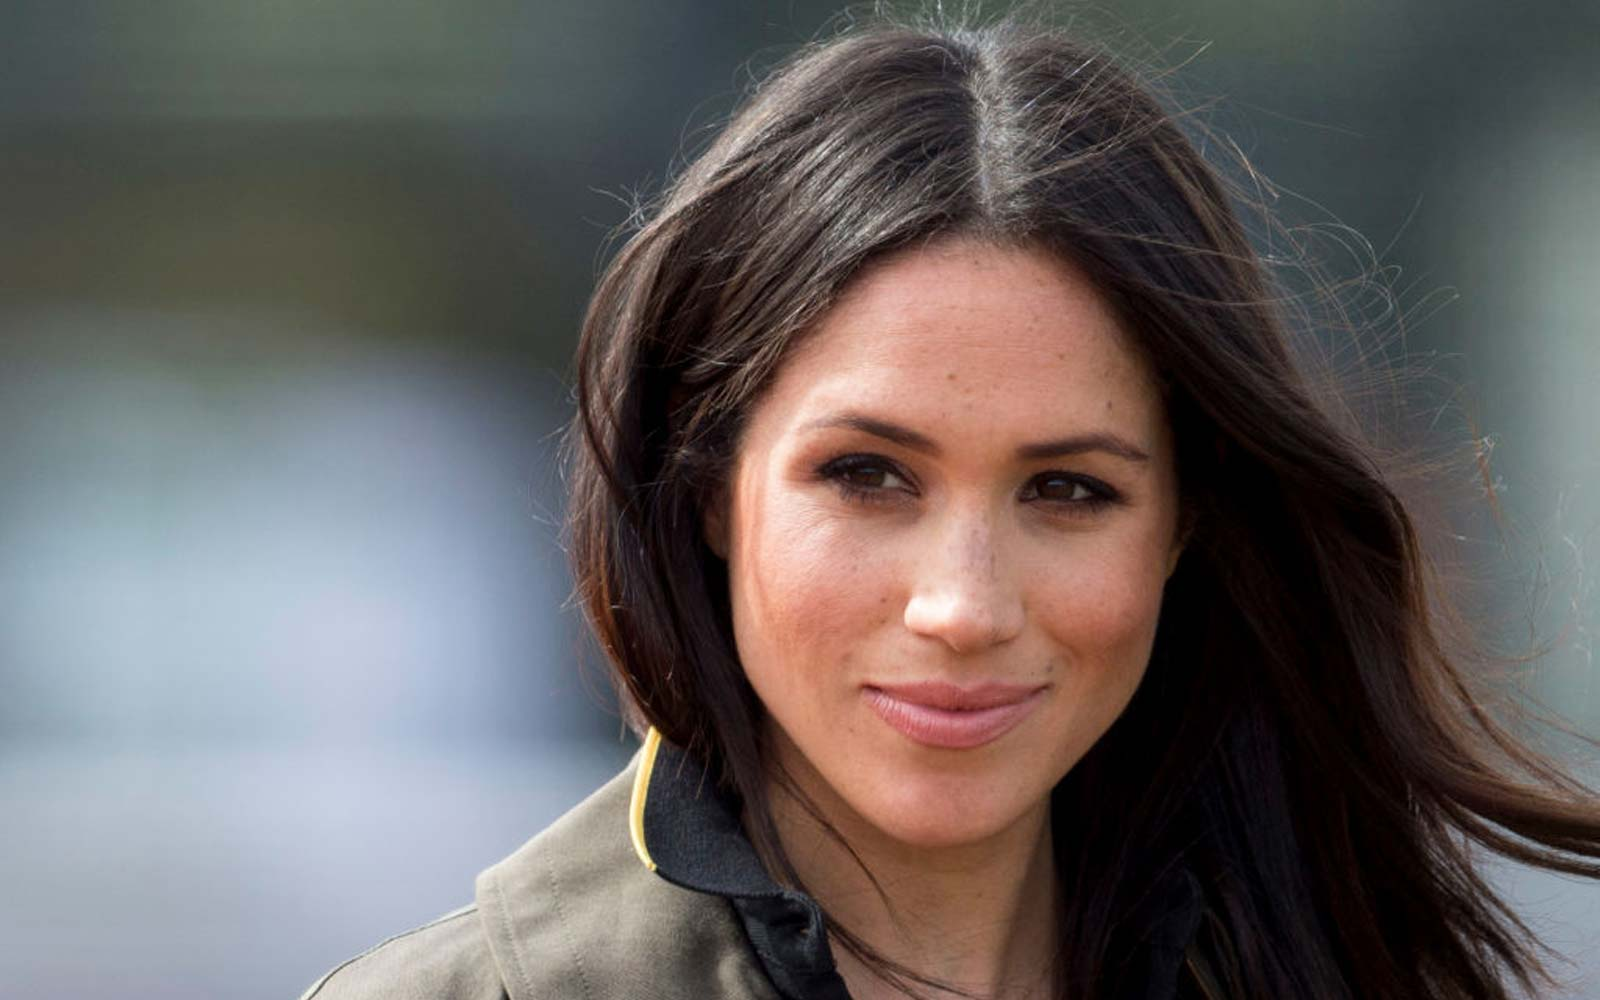 Never-before-seen Footage of Meghan Markle's Powerful Humanitarian Trip to India Released